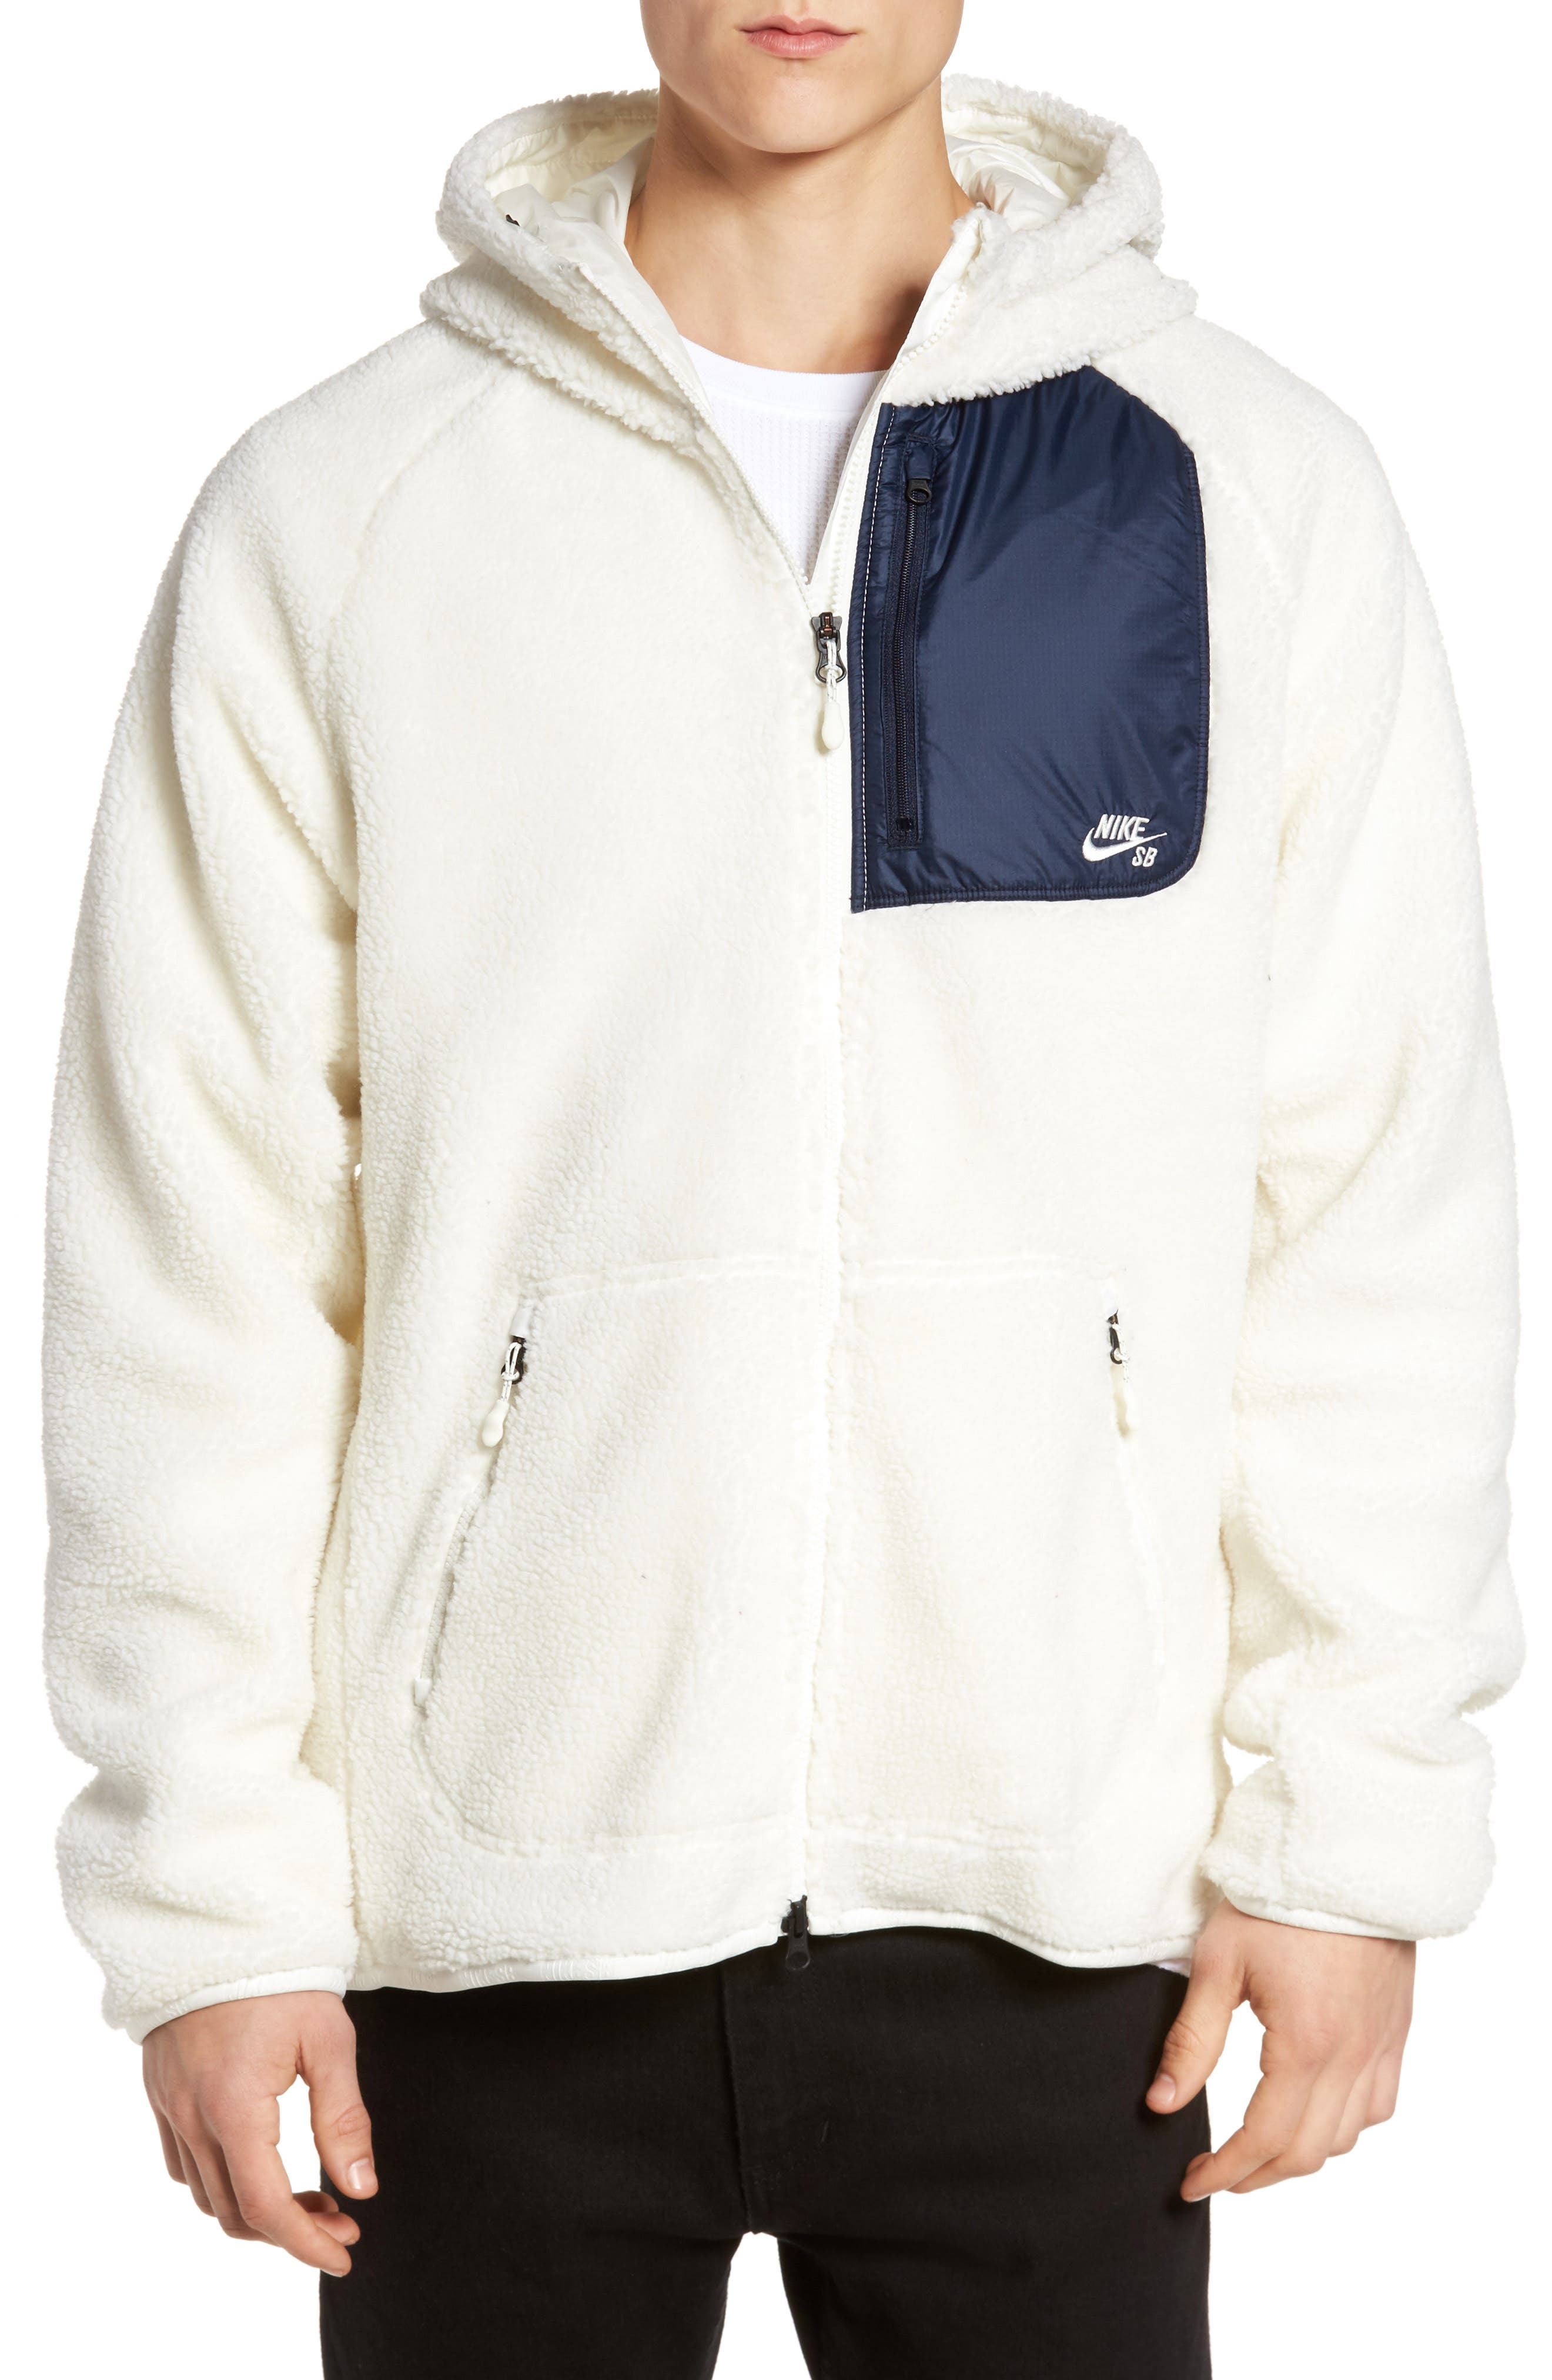 Everett Hoodie,                         Main,                         color, Sail/ Obsidian/ Sail